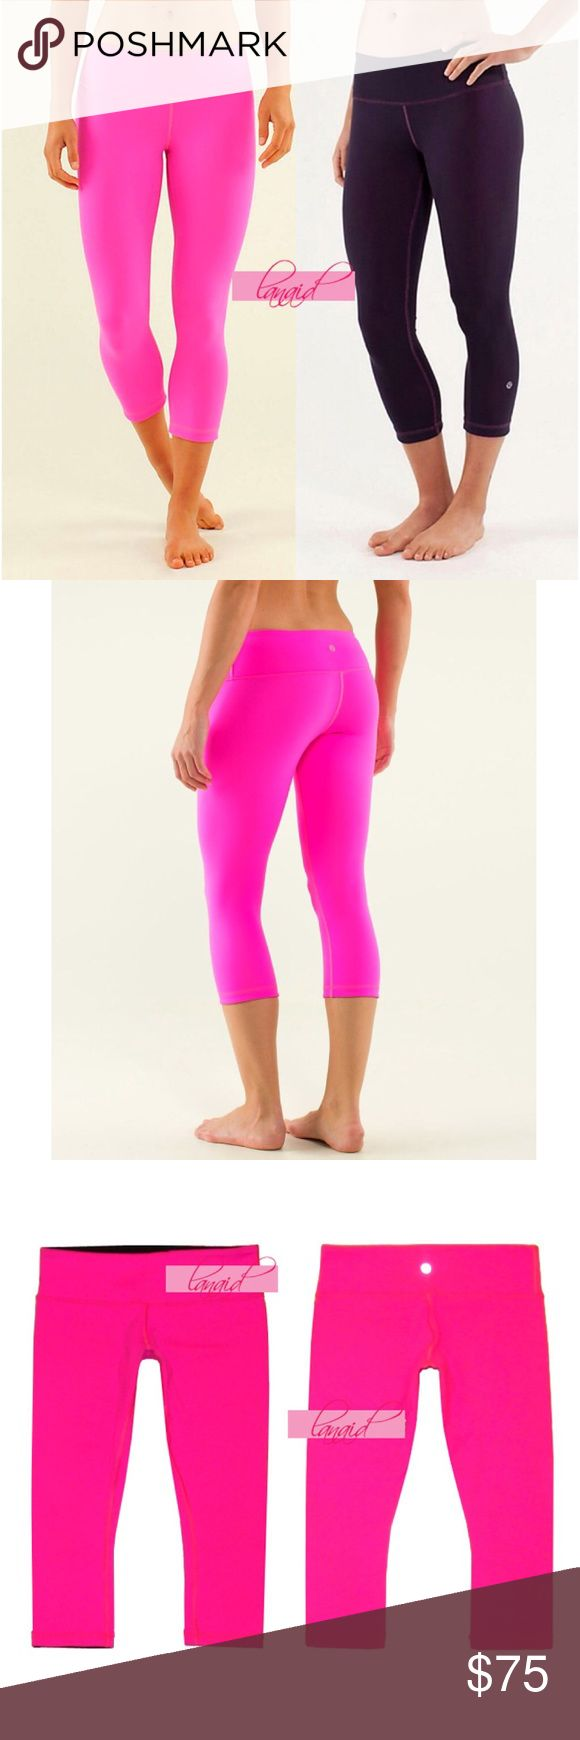 "Lululemon Reversible Wunder Under Crops Pink Black 📡PRICE IS FIRM AND NON-NEGOTIABLE. NO OFFERS. LOWBALLERS WILL BE BLOCKED. NO TRADES.📡 Lululemon ""Wunder Under Crop"" reversible yoga pants in Raspberry Glo (hot pink)/Black. Reverses to black--two looks in one! This pair was not made with a size dot, but these are a size 8, as stated on the removable inner rip tag before it was taken out. Four-way stretch, second-skin fit. Made with sweat-wicking, breathable, cottony-soft Luon. lululemon…"